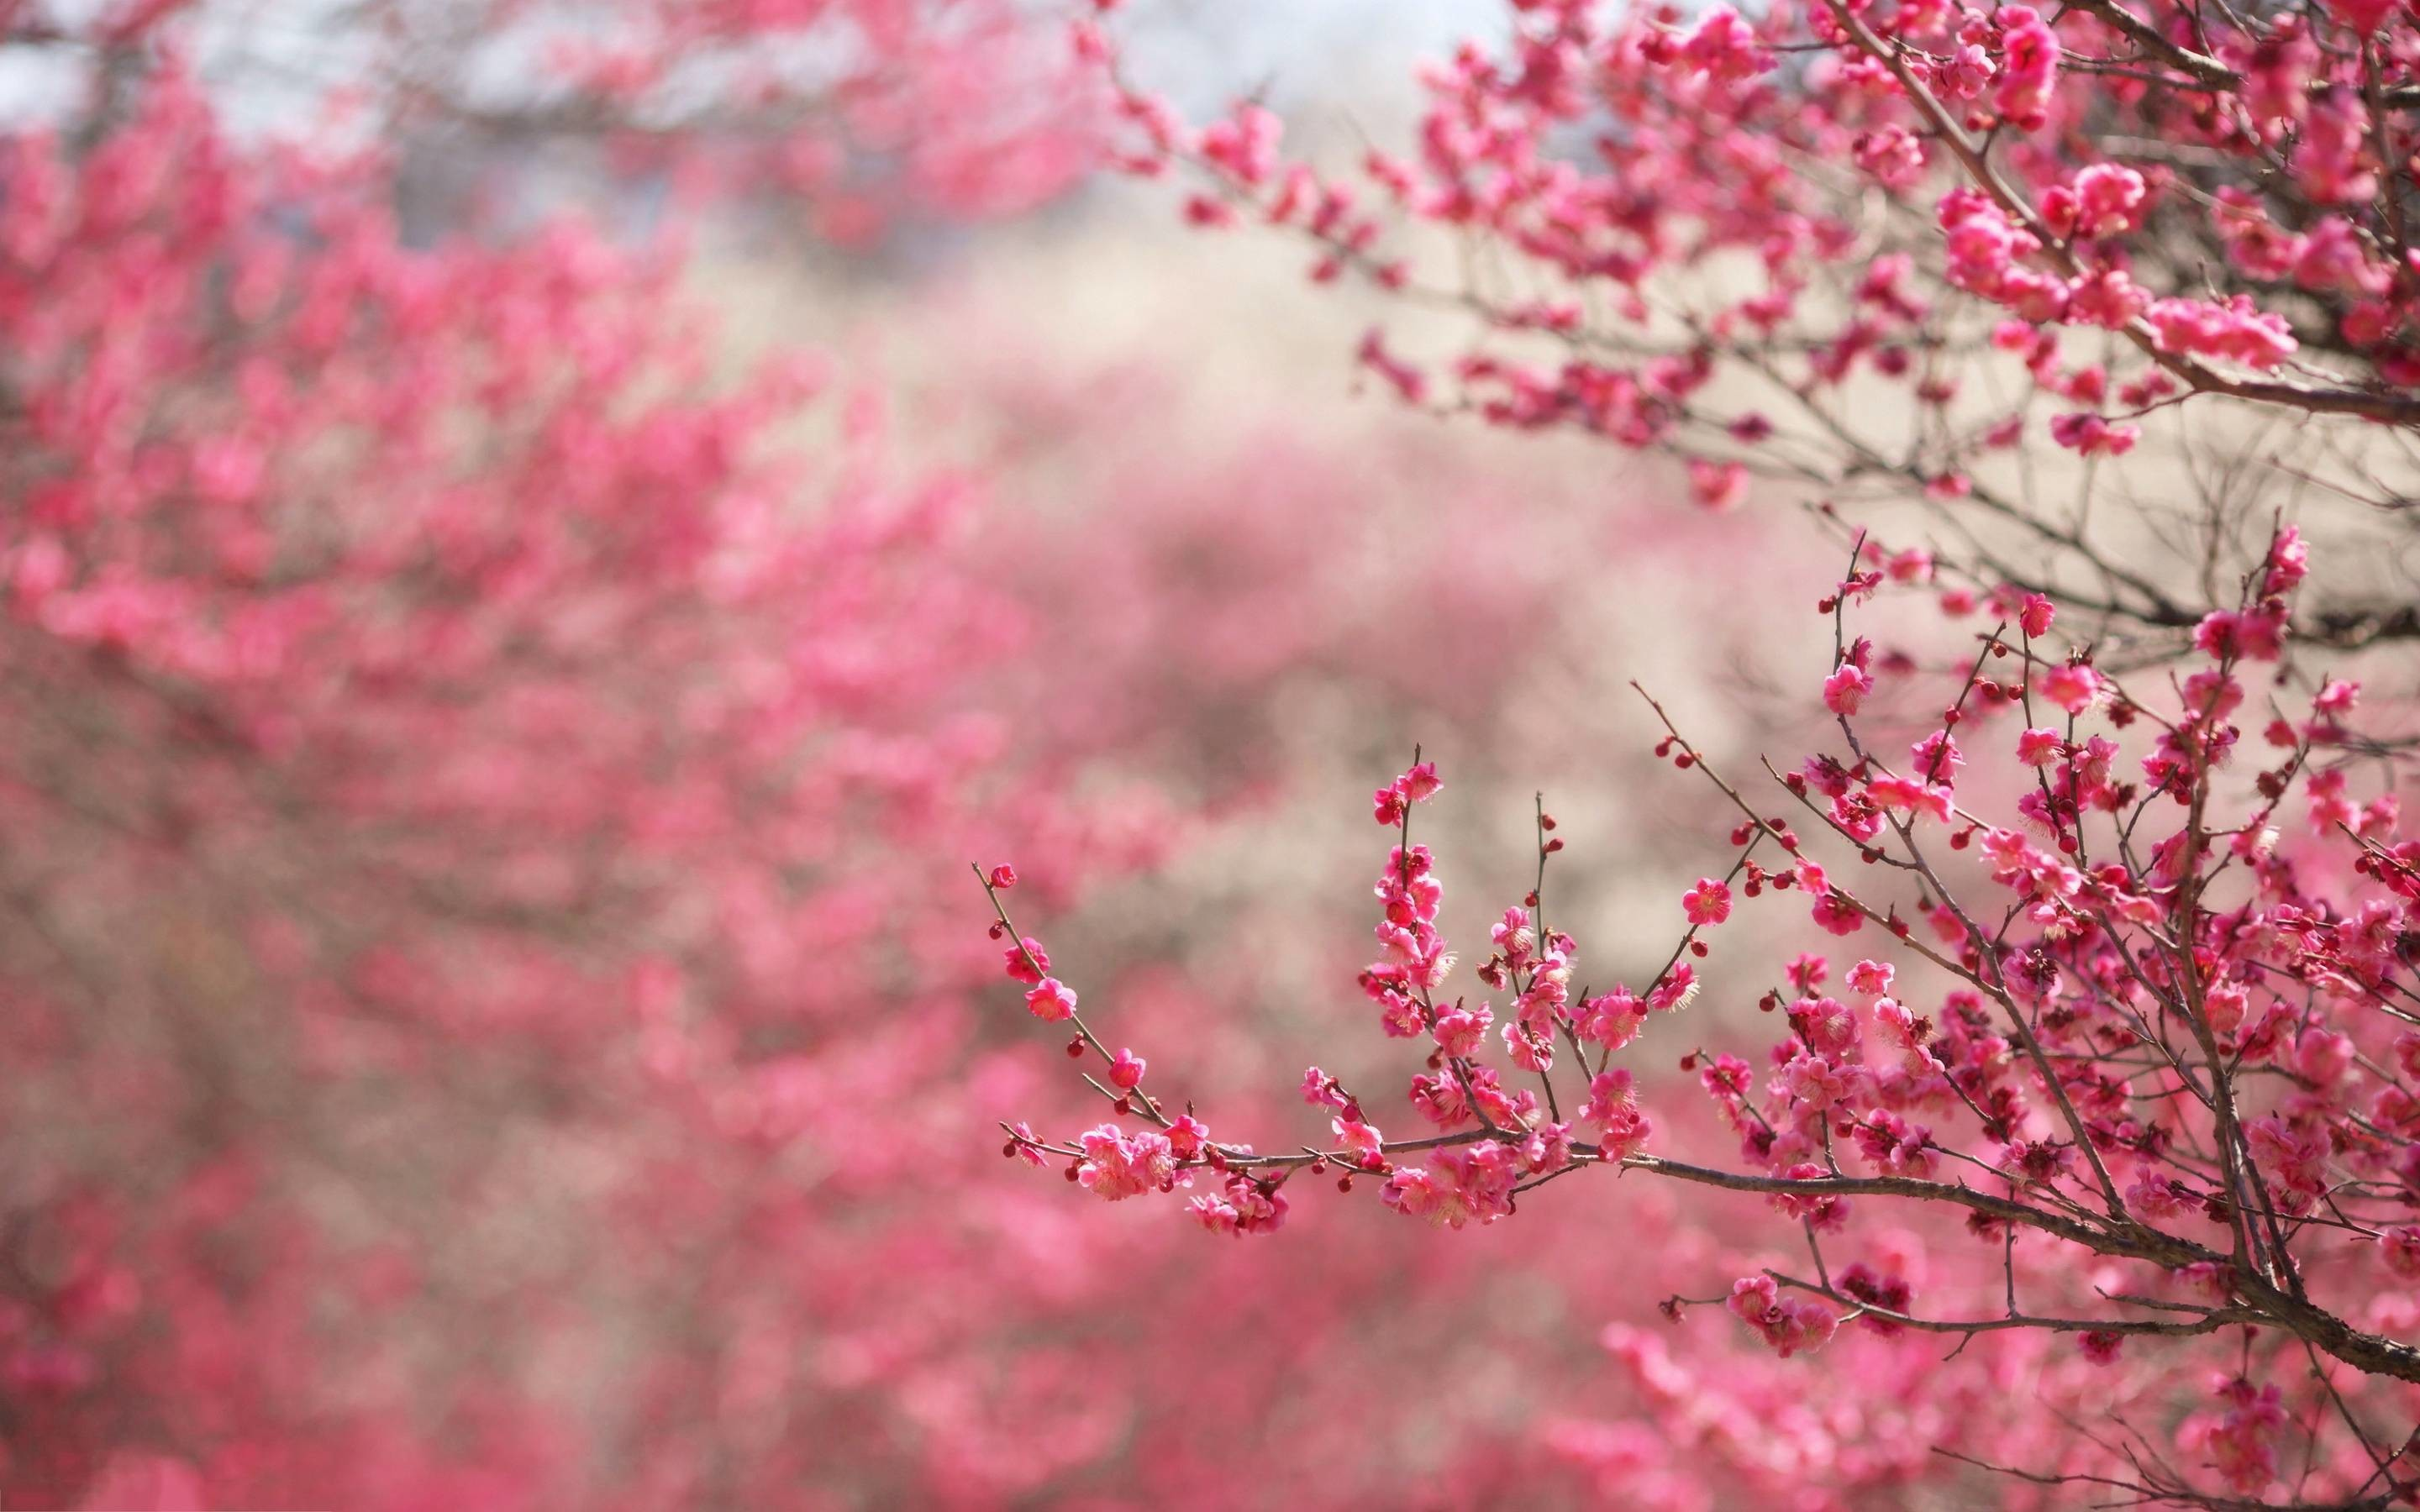 2880x1800 Wallpapers For Pink Cherry Blossom Backgrounds